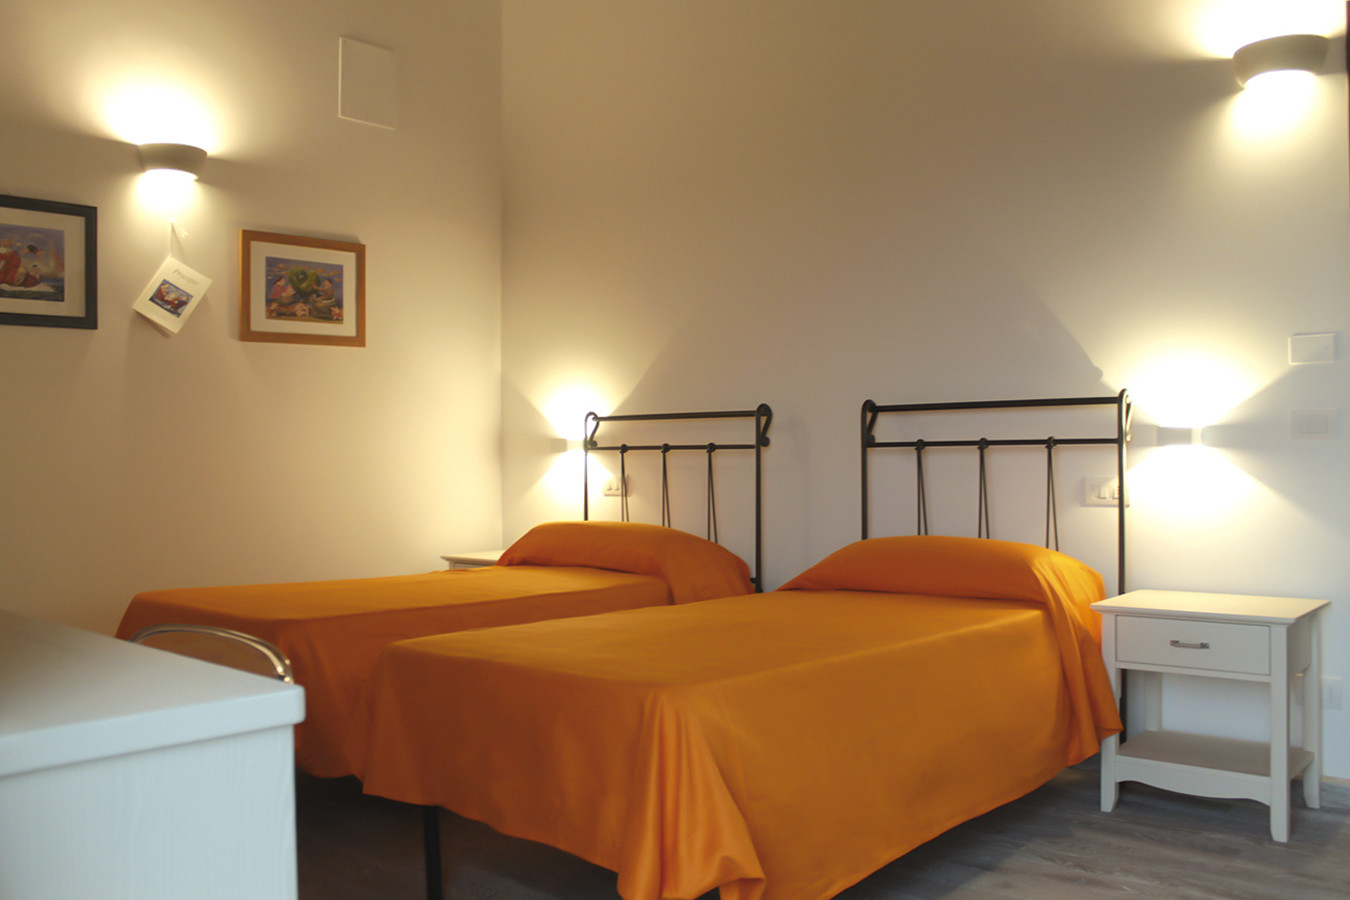 camere - rooms - zimmer